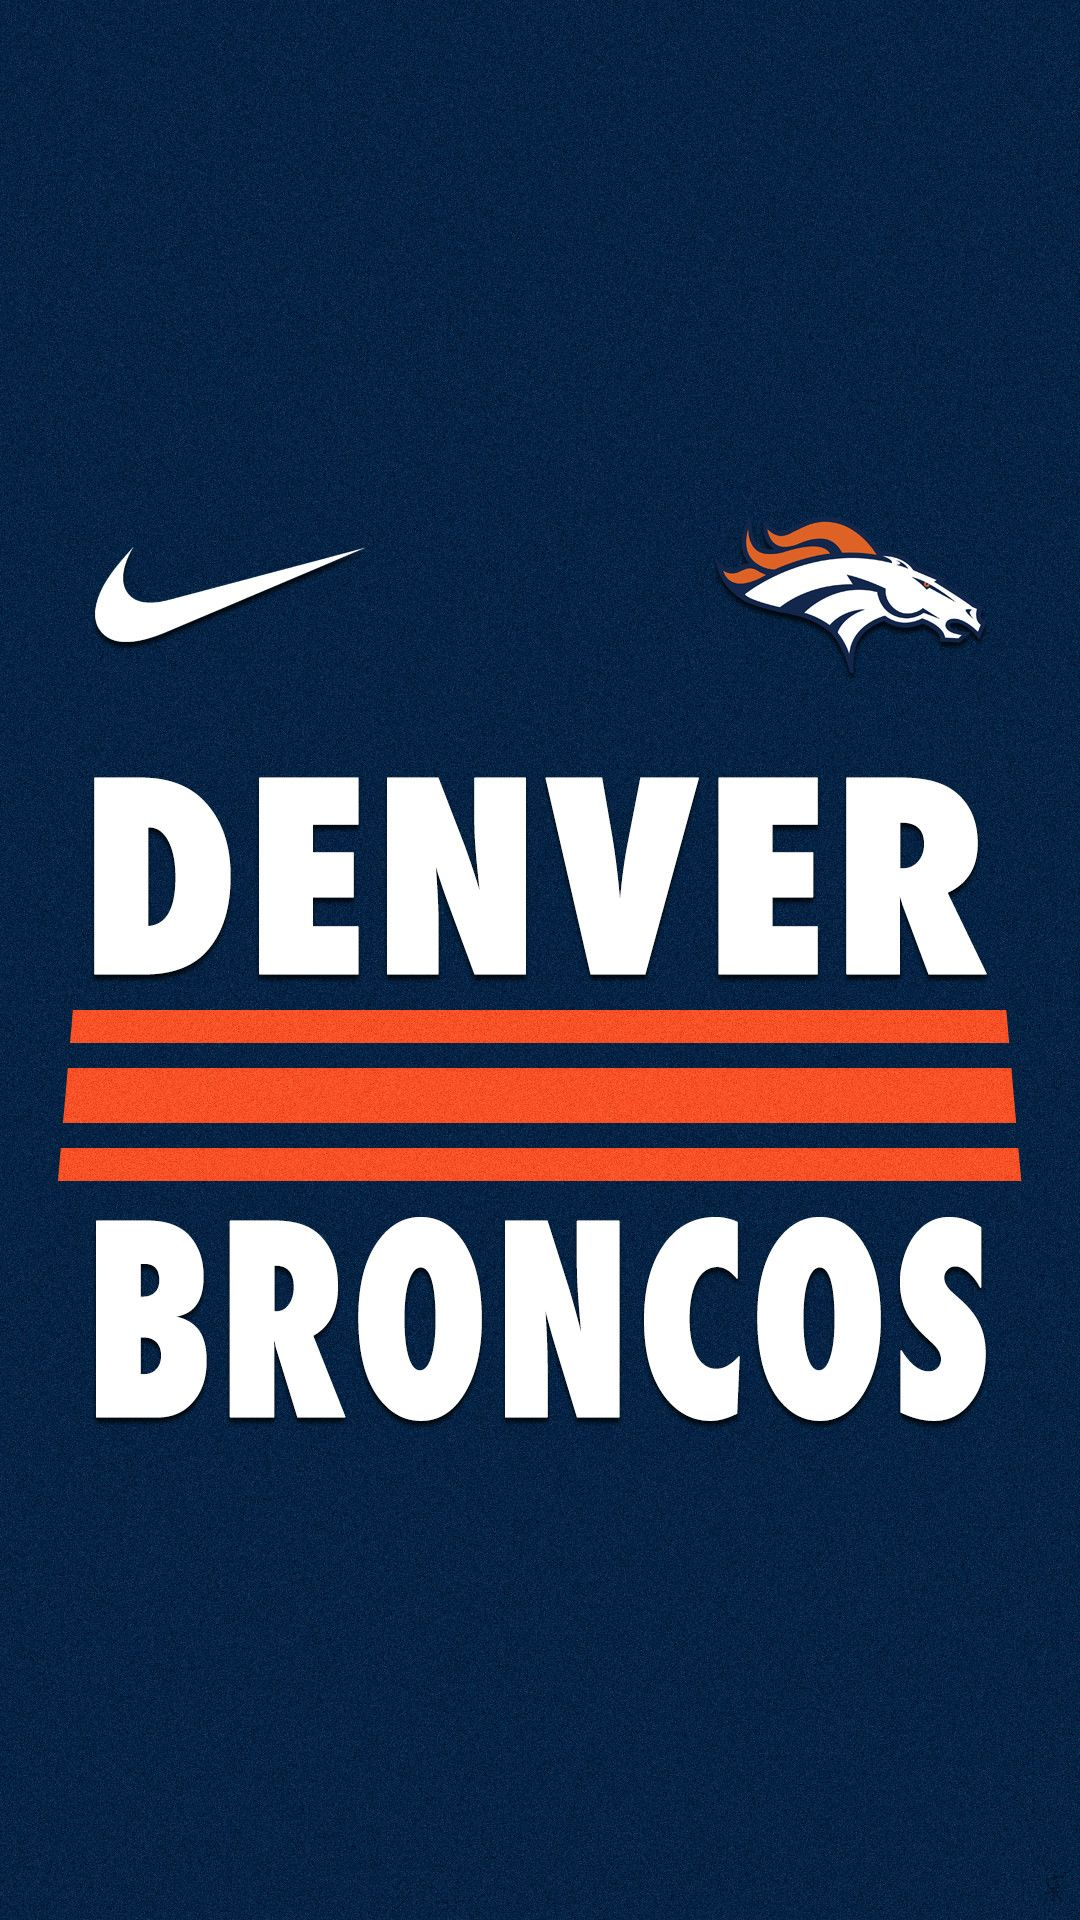 Von Miller Broncos Android Background in 2020 (With images